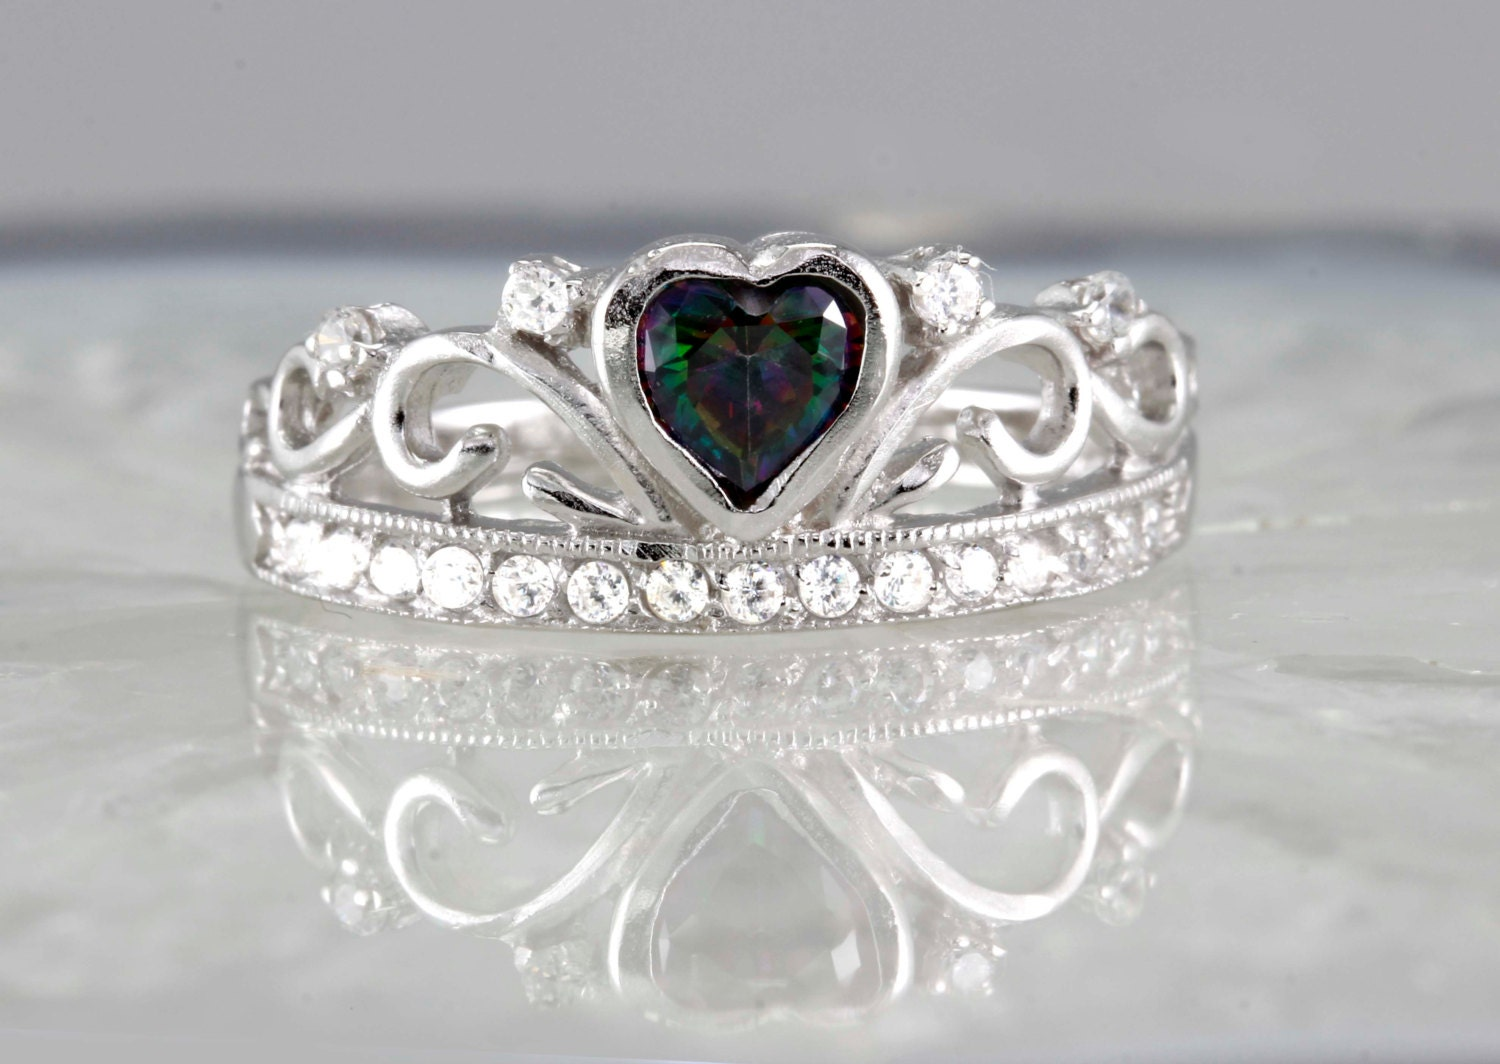 sterling silver topaz crown tiara ring with stones